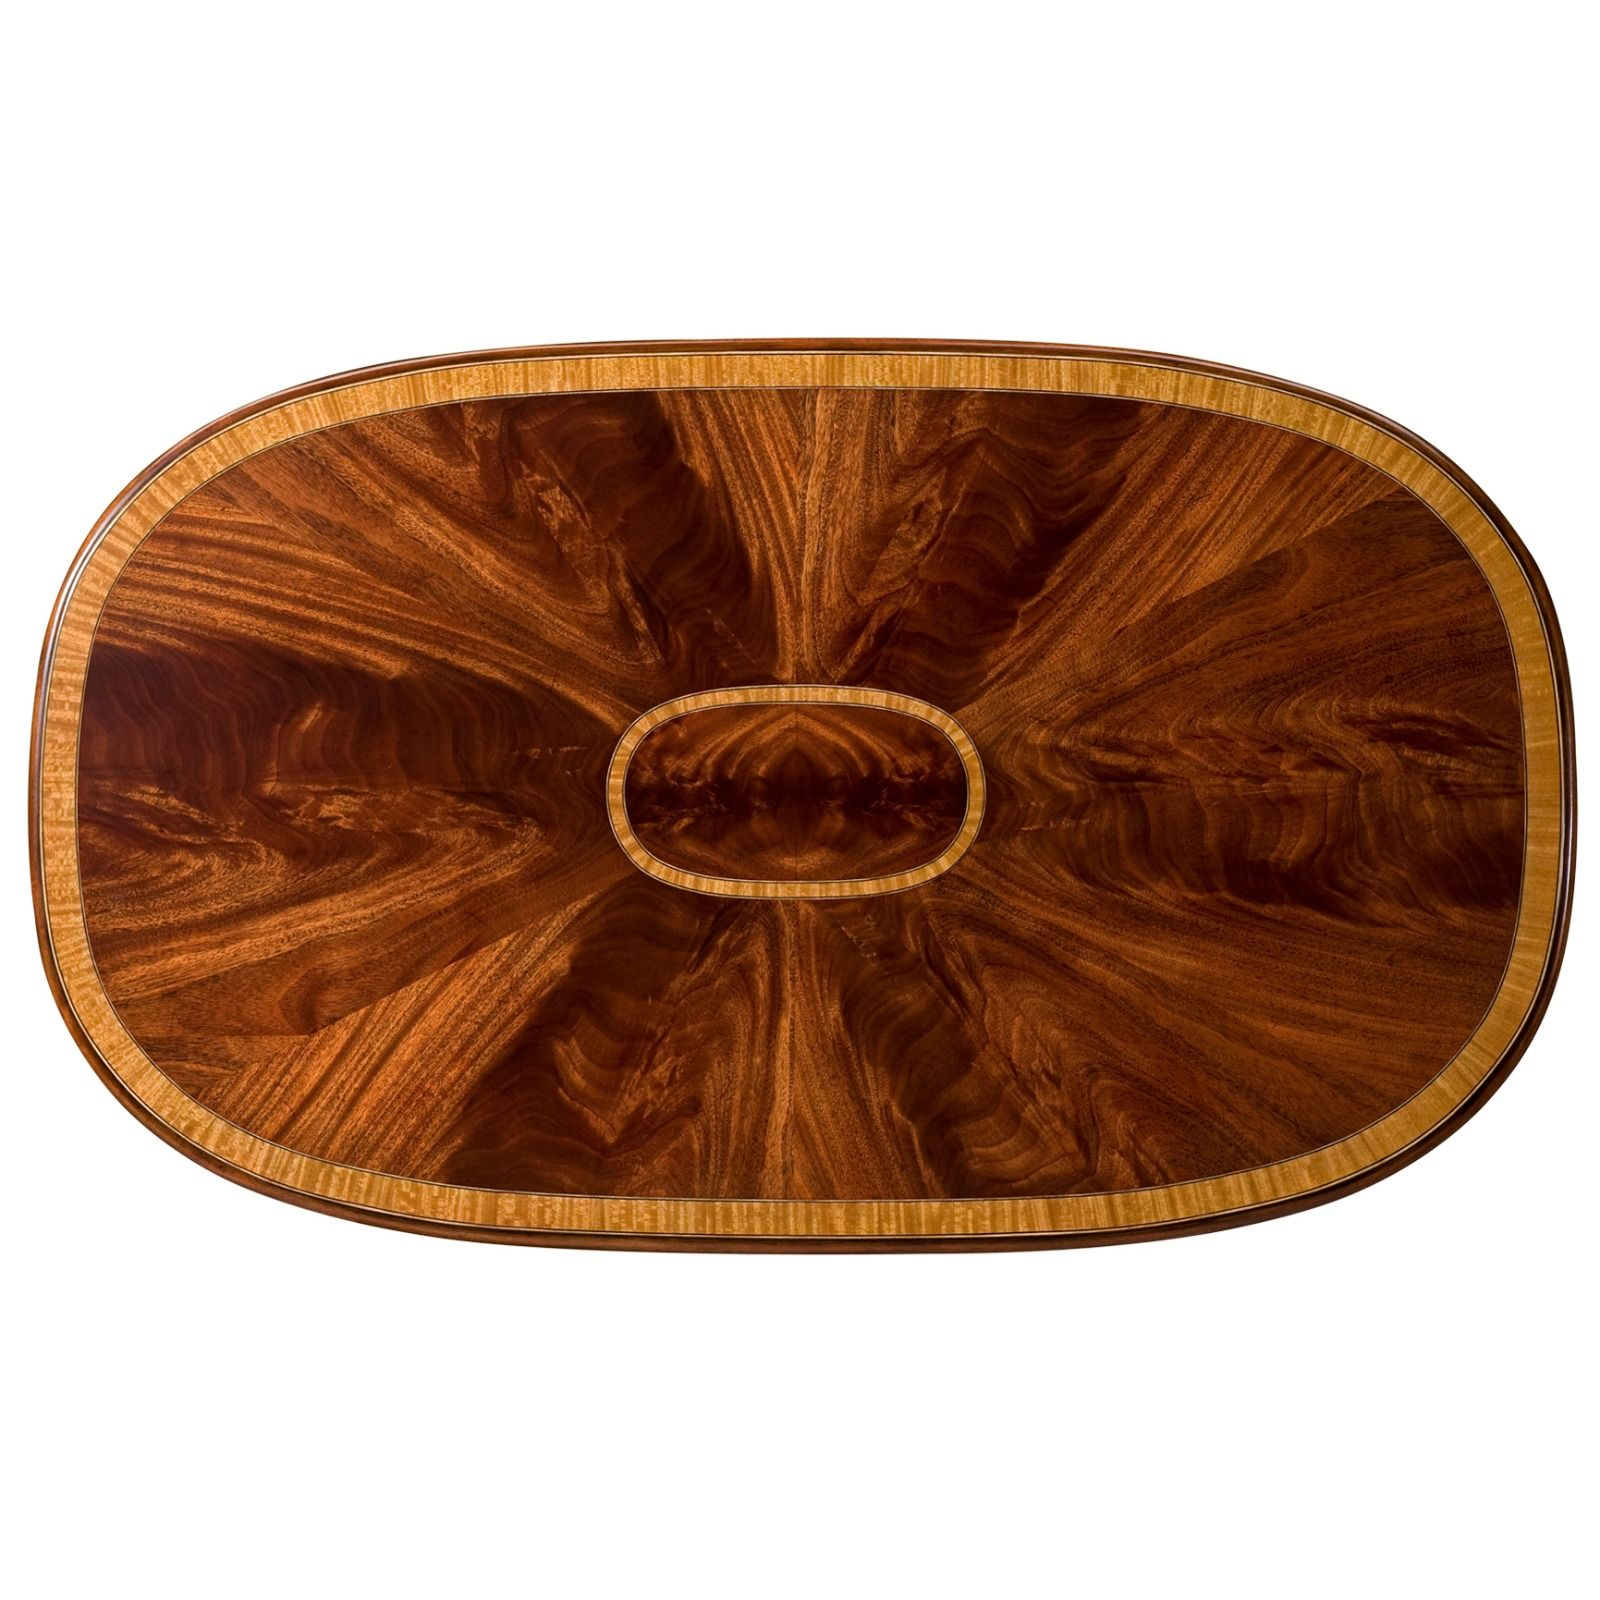 Swirl mahogany and satinwood coffee table